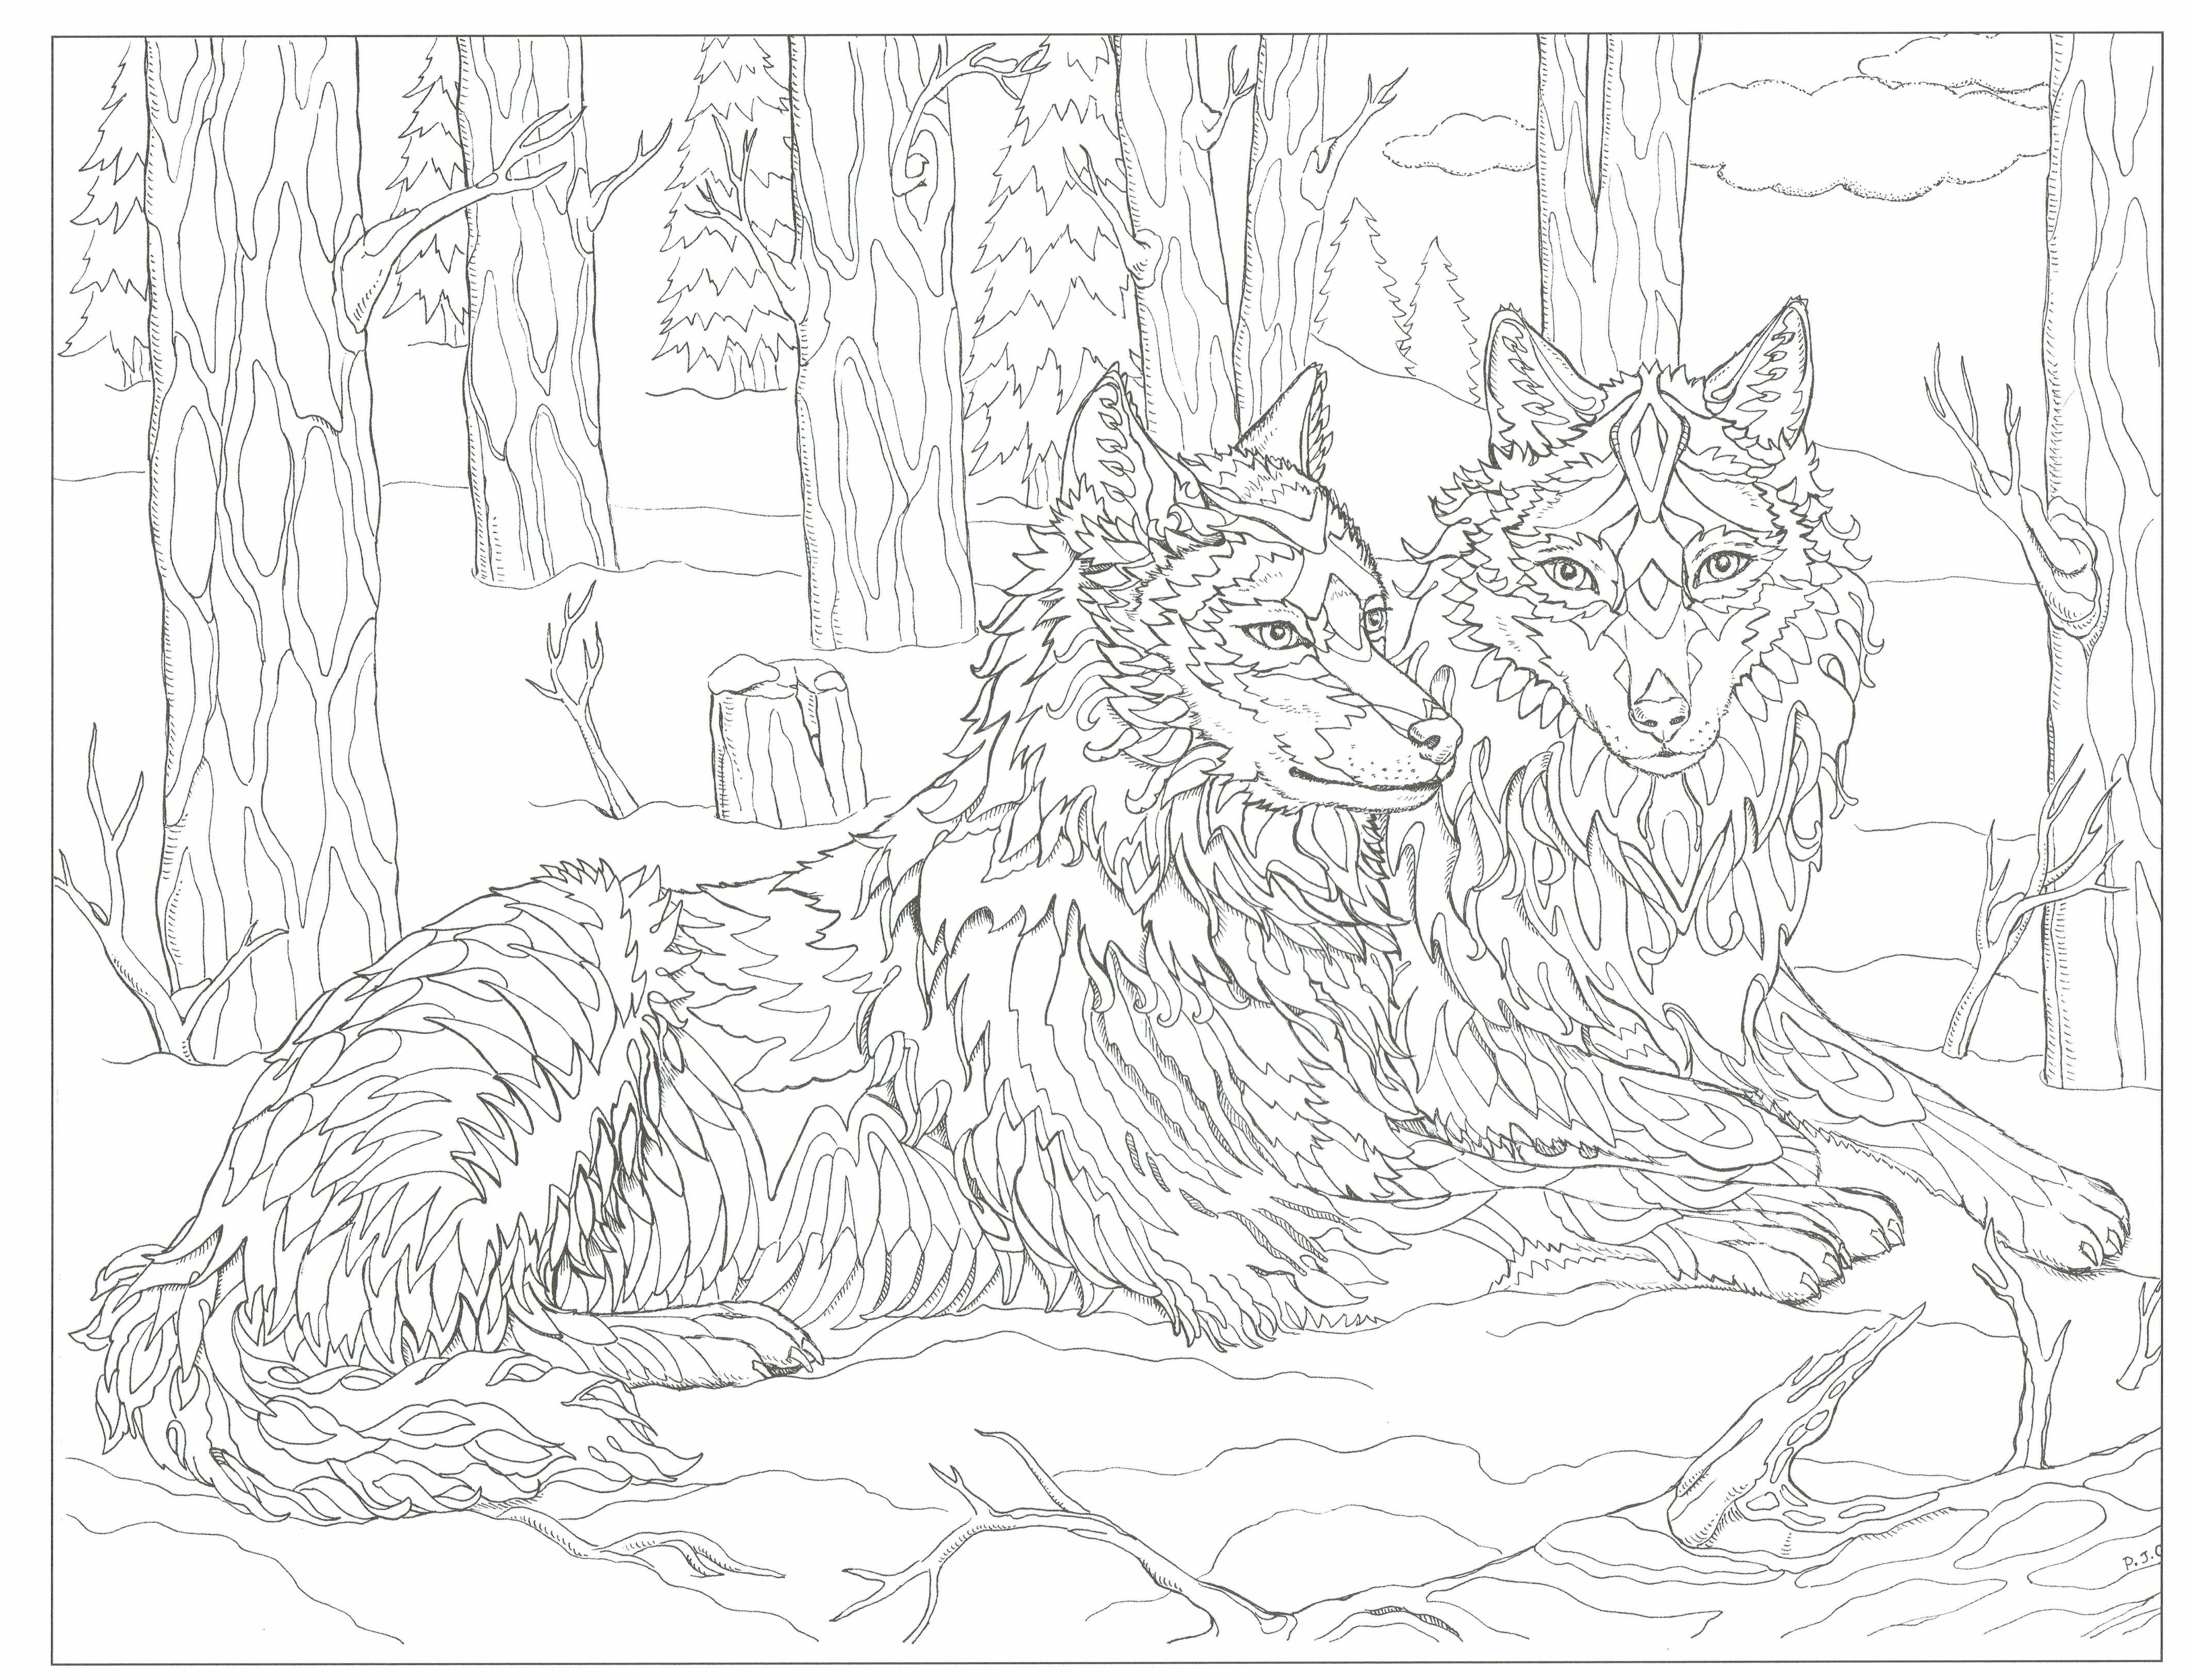 This Will Print On 11x17 Just As Nice As 8 5x11 Angel Coloring Pages Horse Coloring Pages Dog Coloring Book